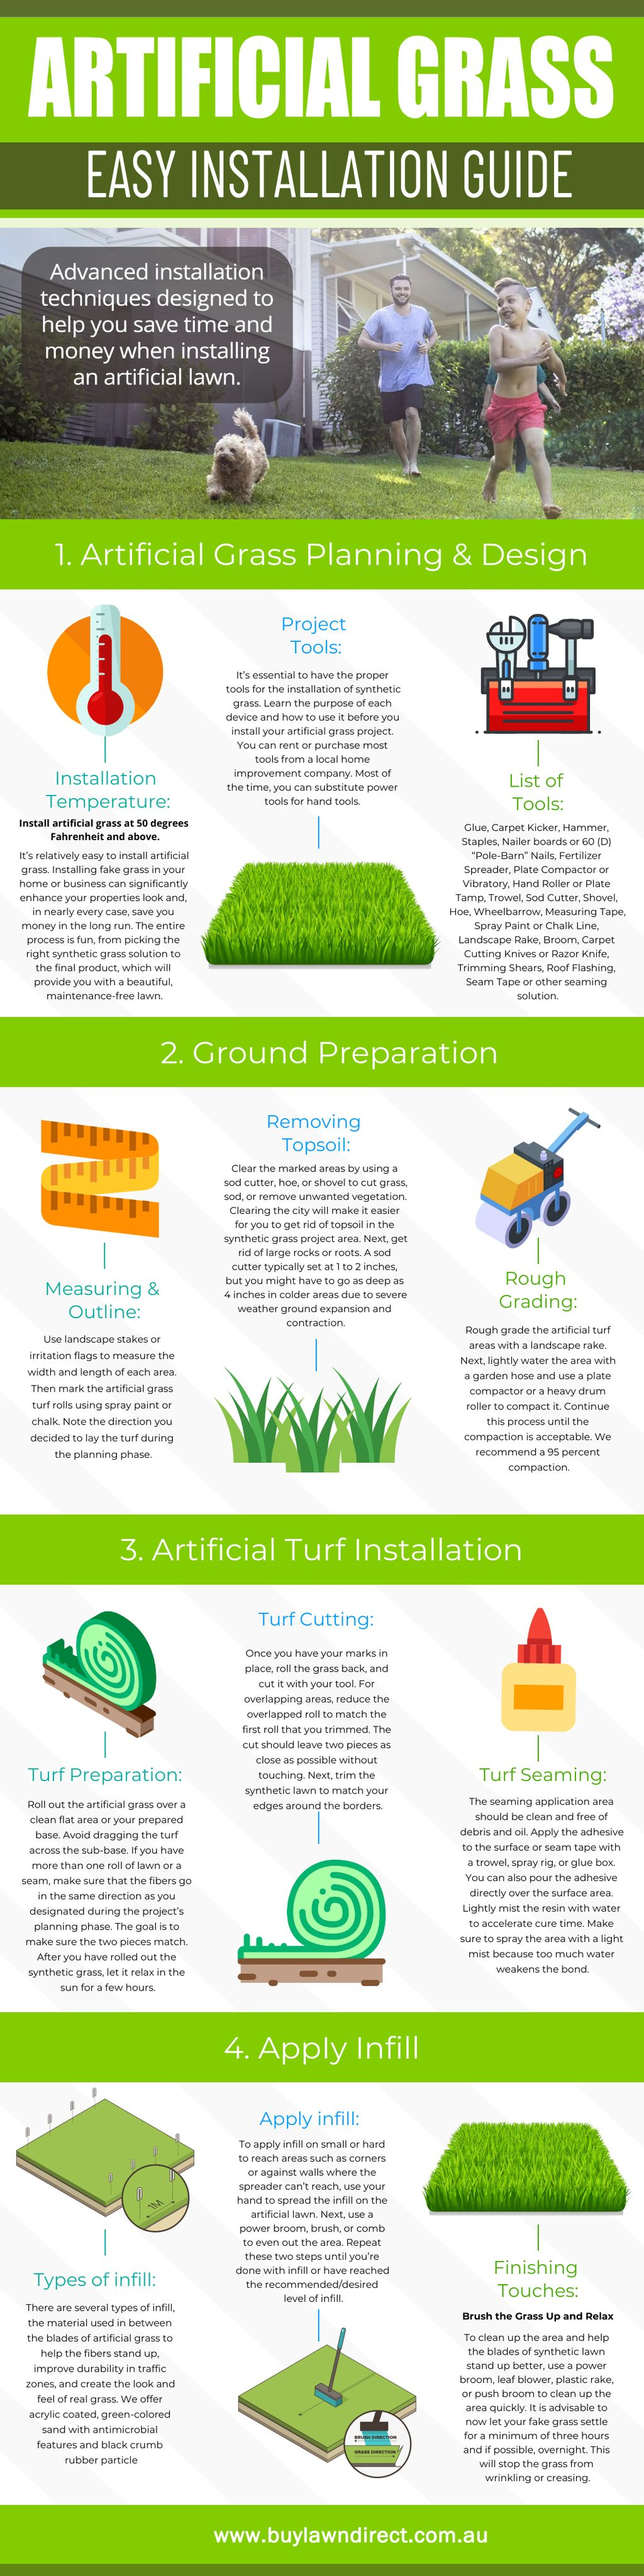 artificial-grass-easy-installation-guide-kda35a8m